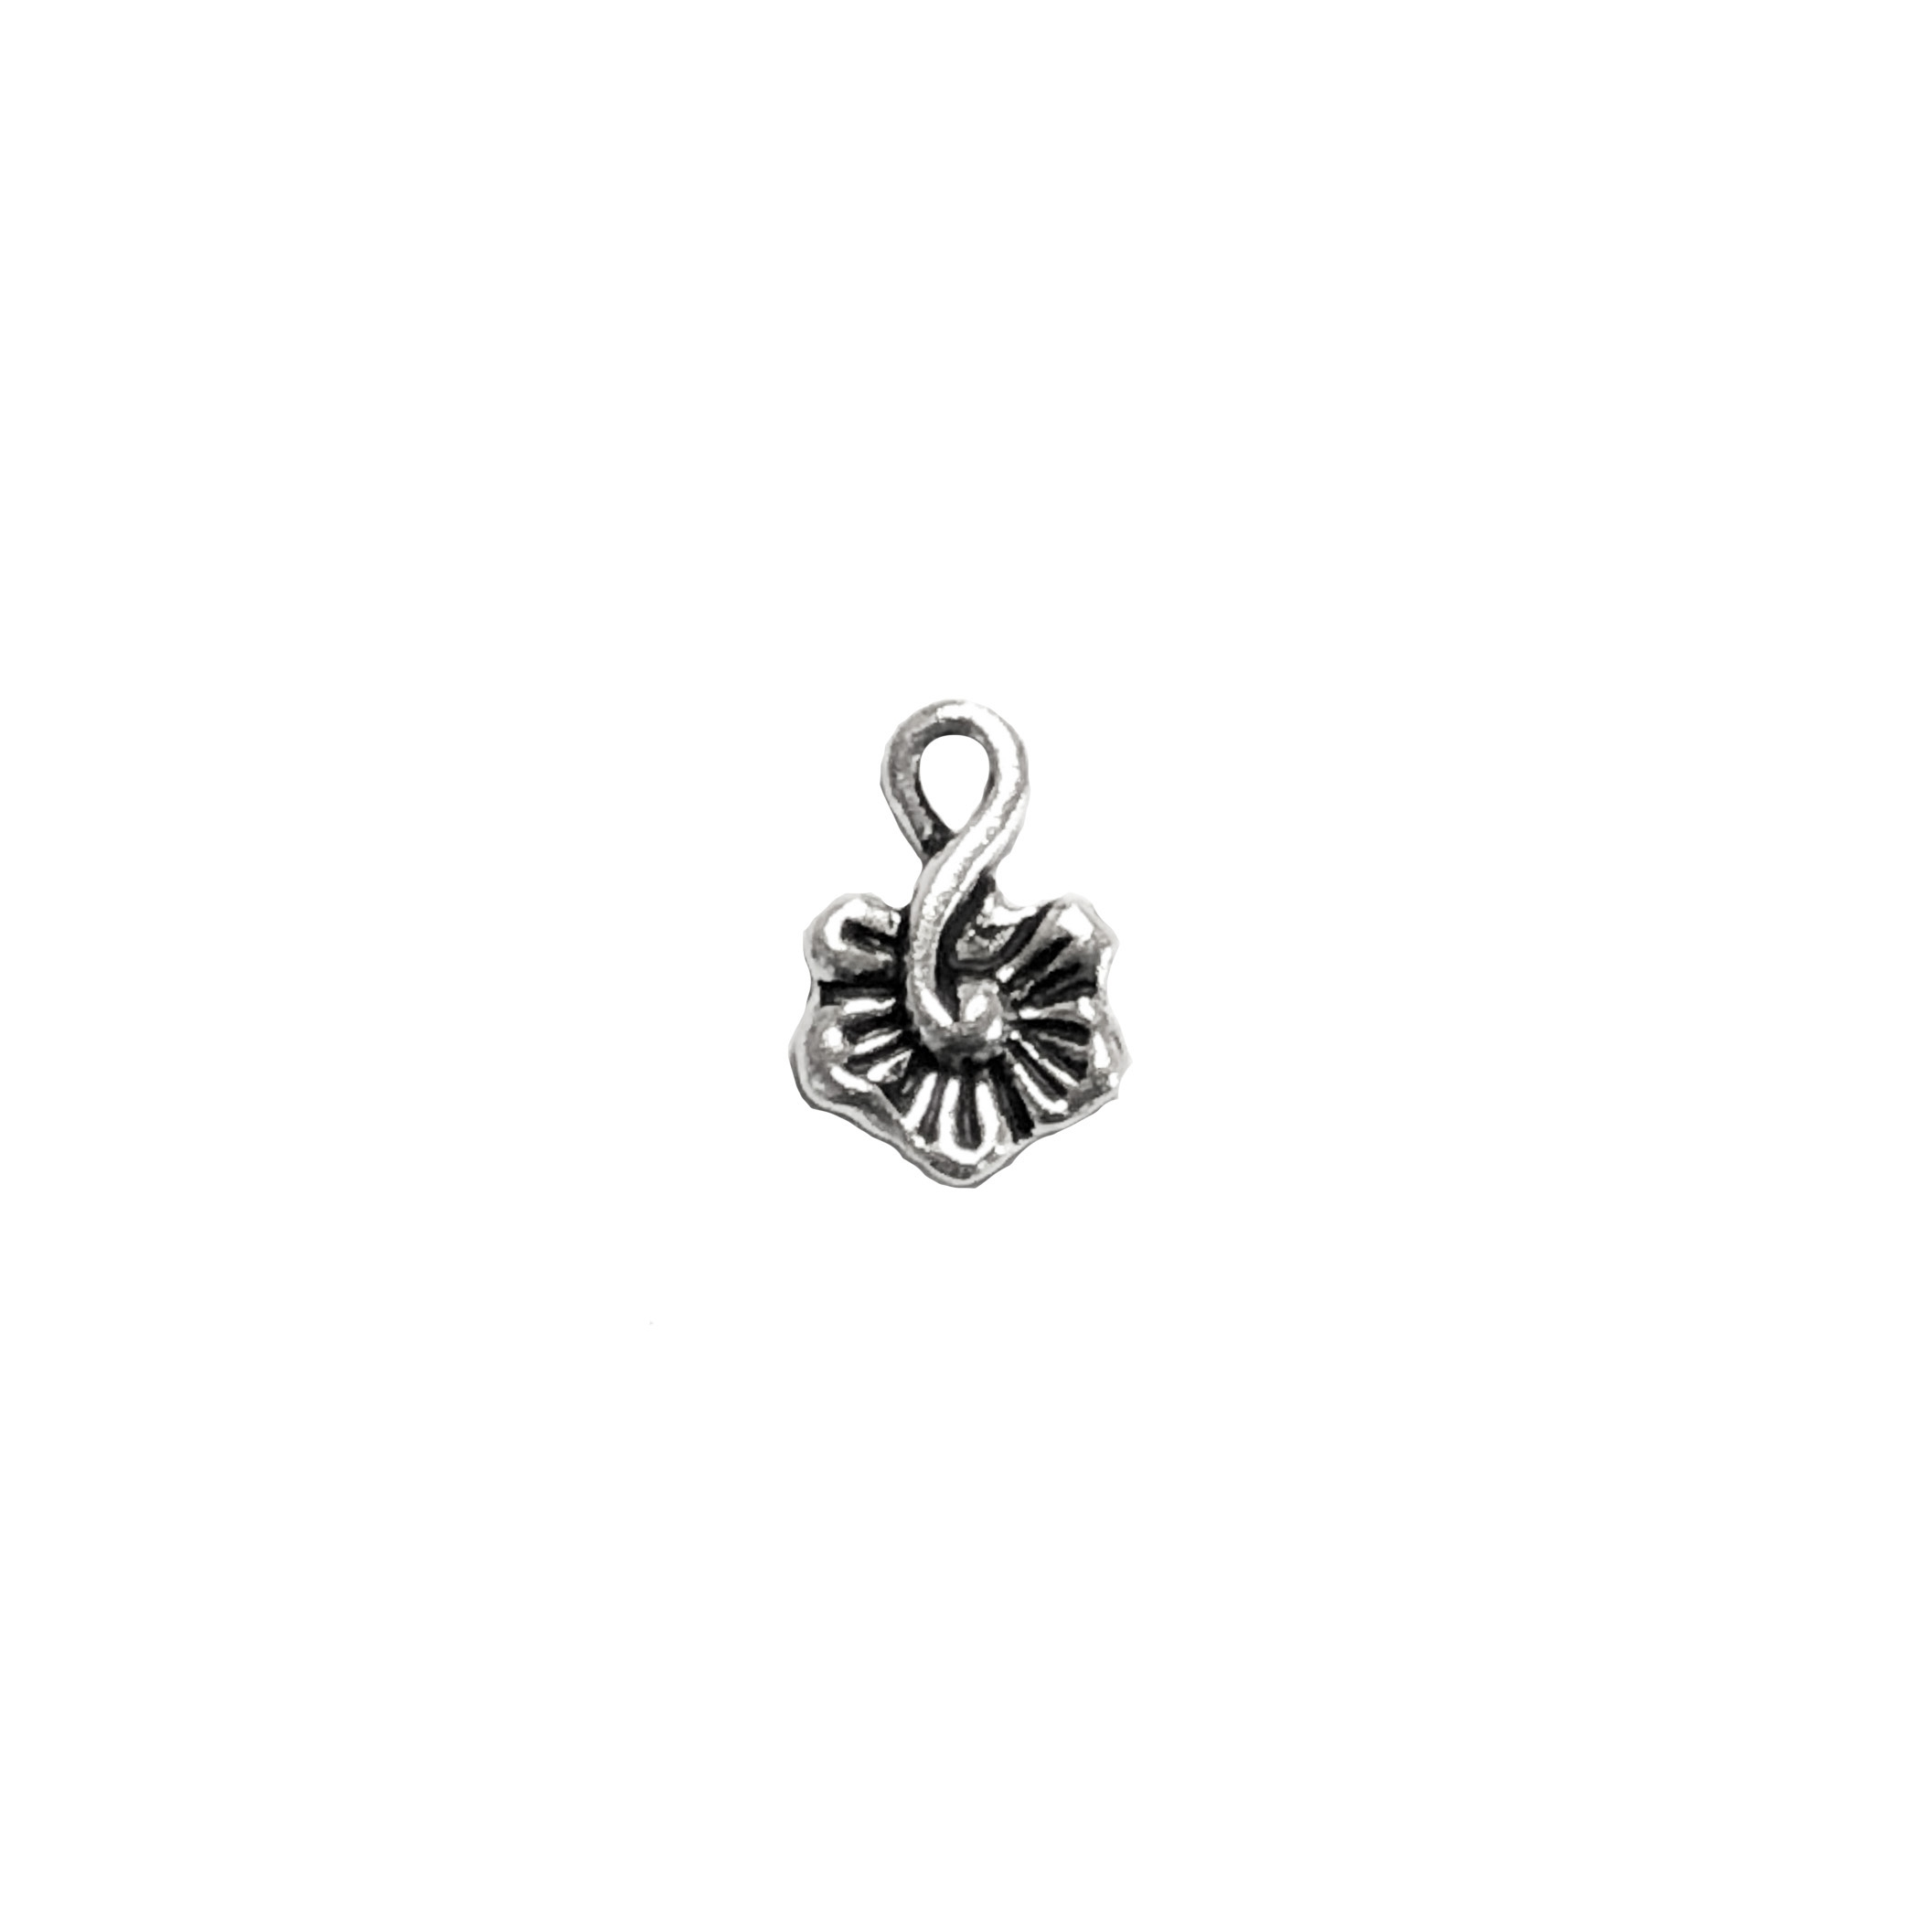 Small Blossom Charm, Antique Silver, Ear Drop, 016, flower charm, black antiquing, flower jewelry,  jewelry making supplies, vintage jewelry supplies, 8x12mm